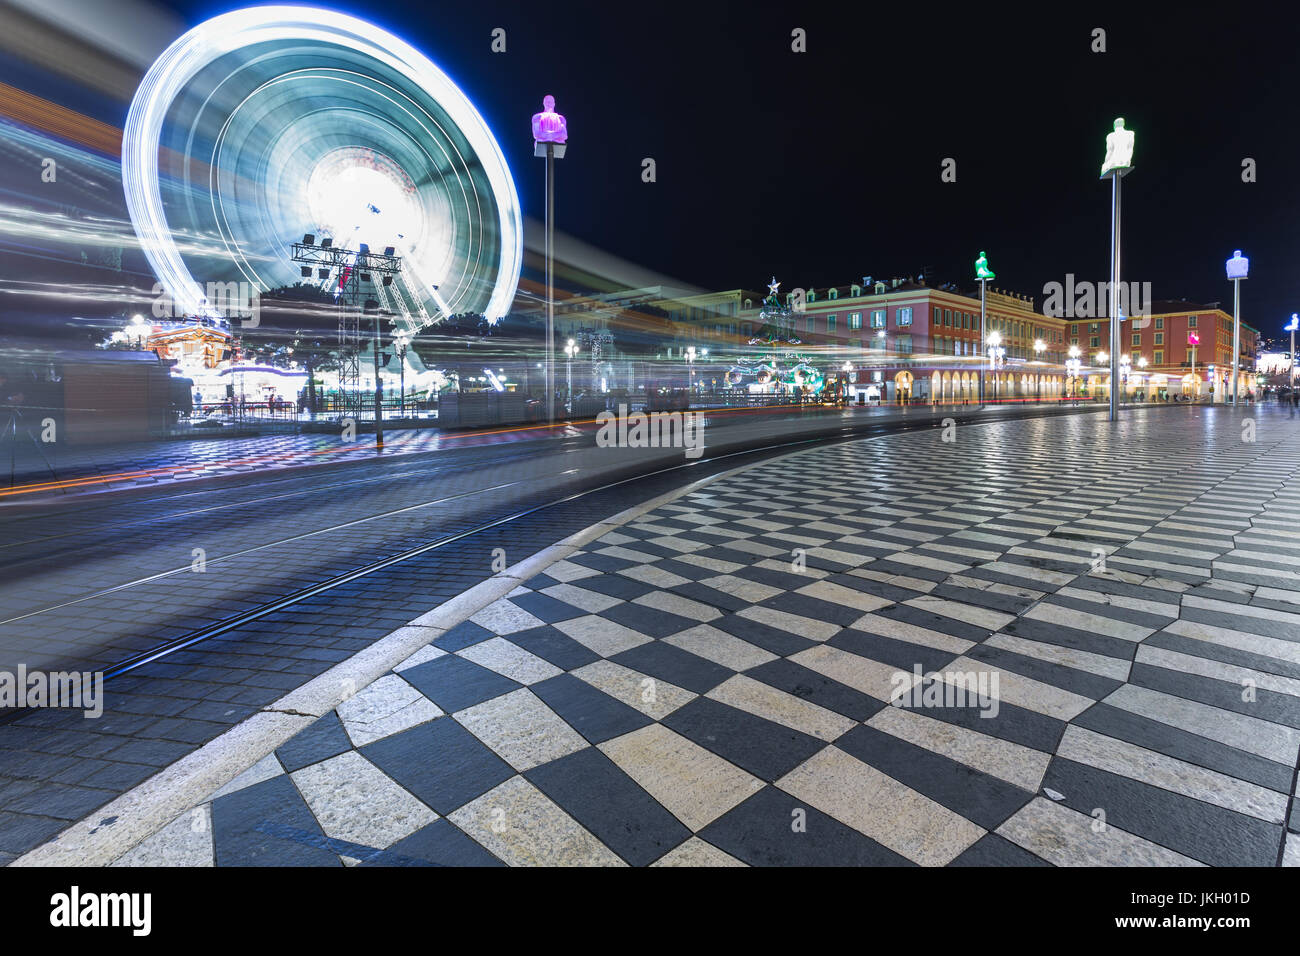 Place Massena in Nice, France - Stock Image